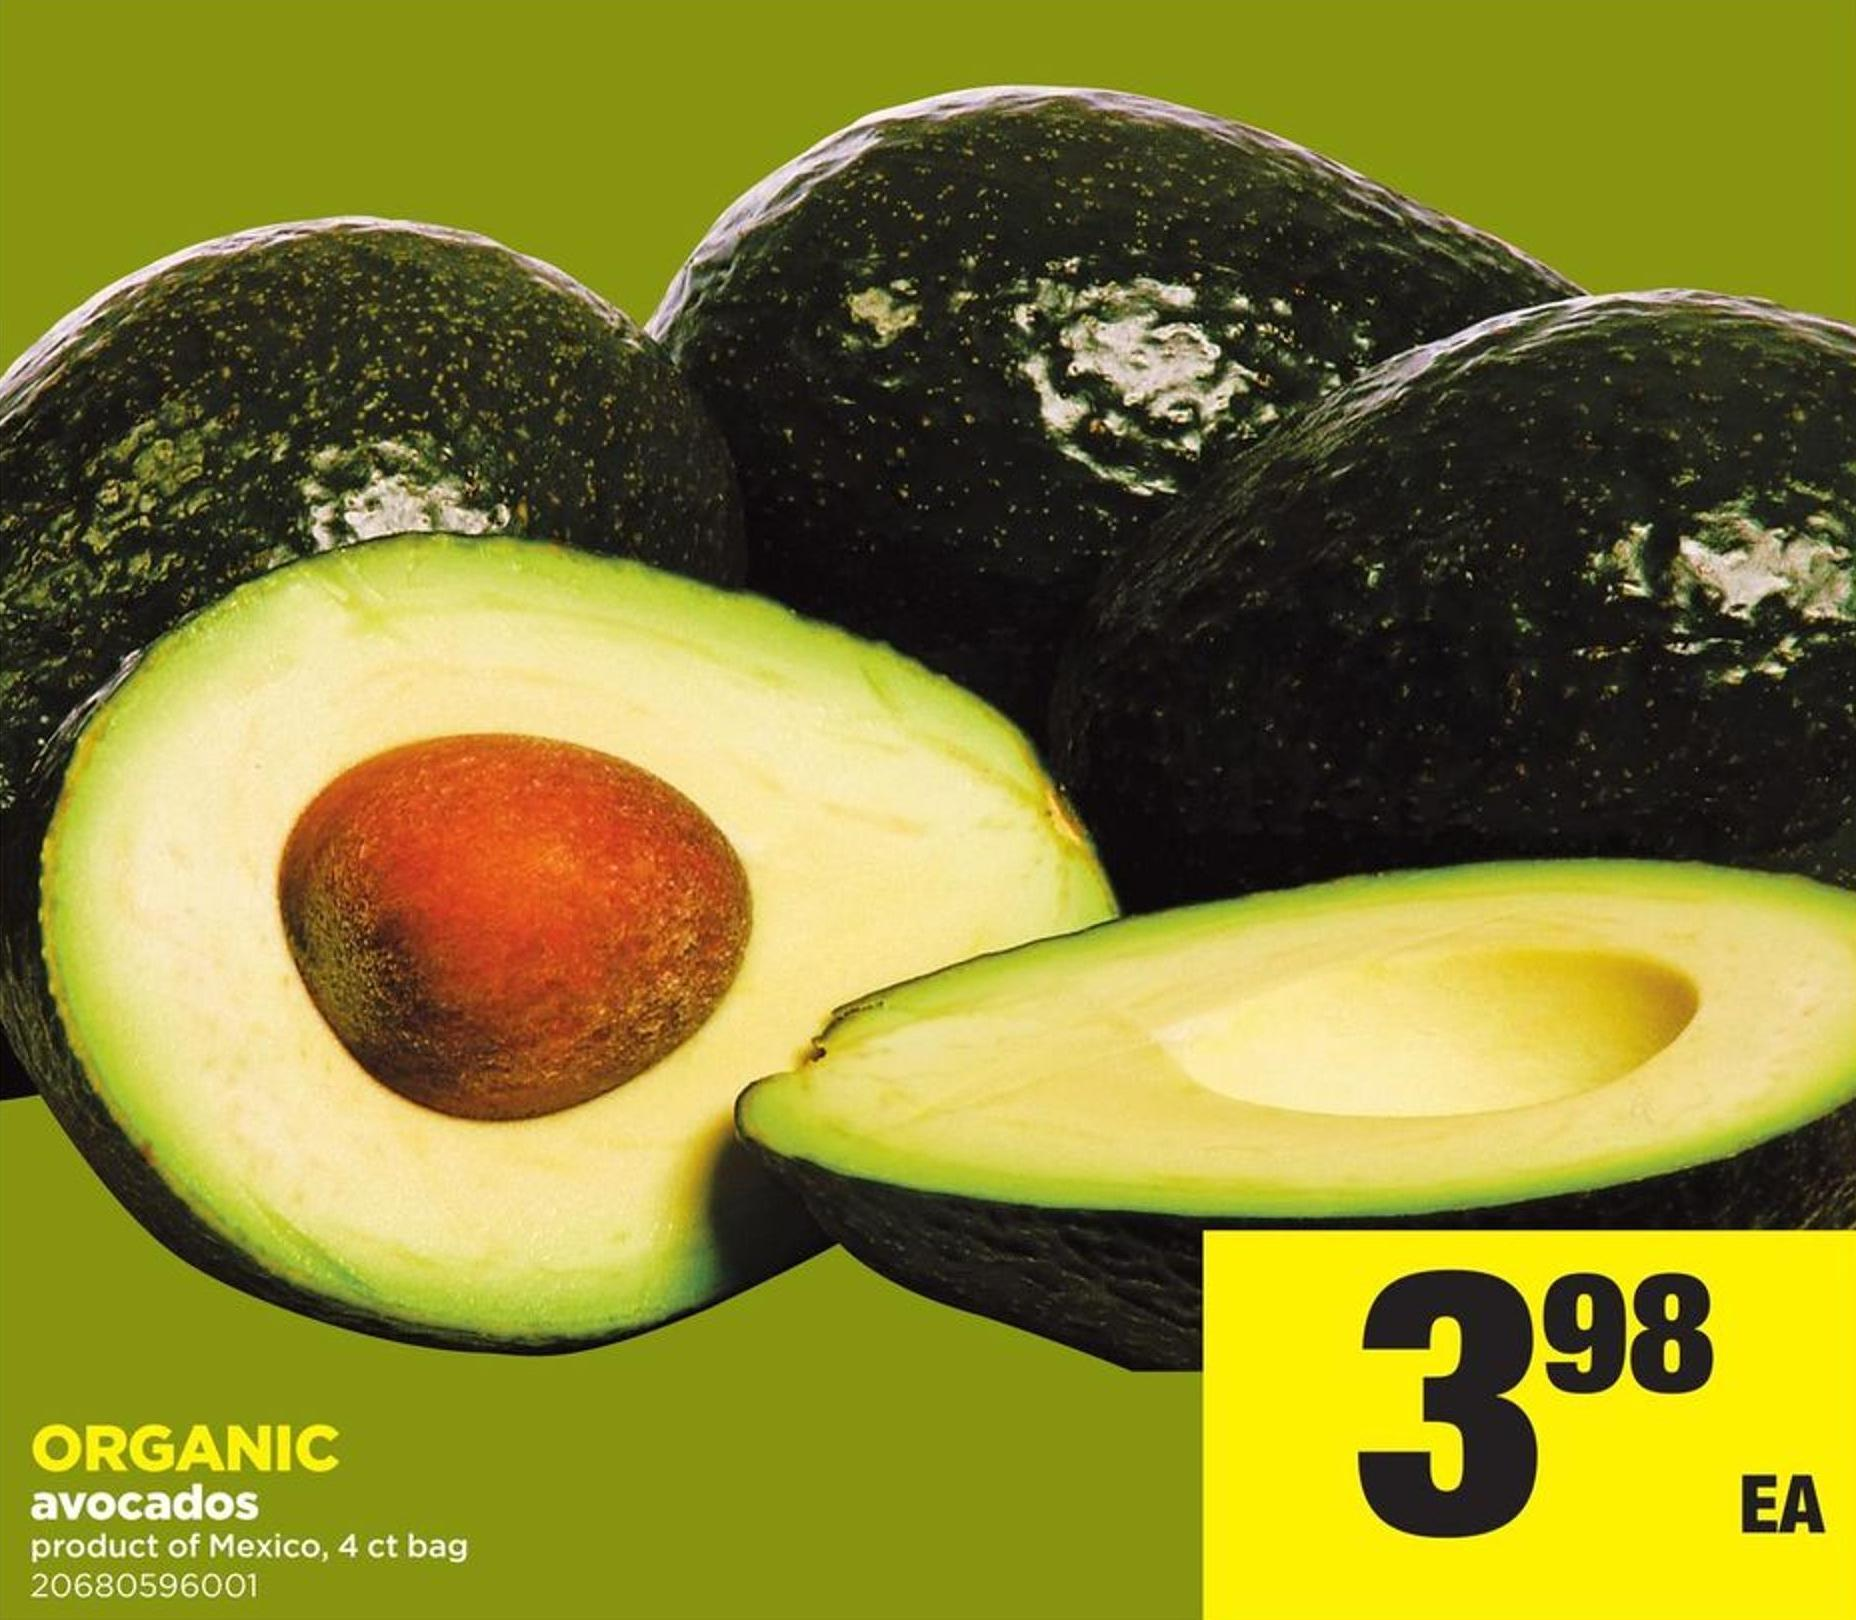 Organic Avocados - 4 Ct Bag